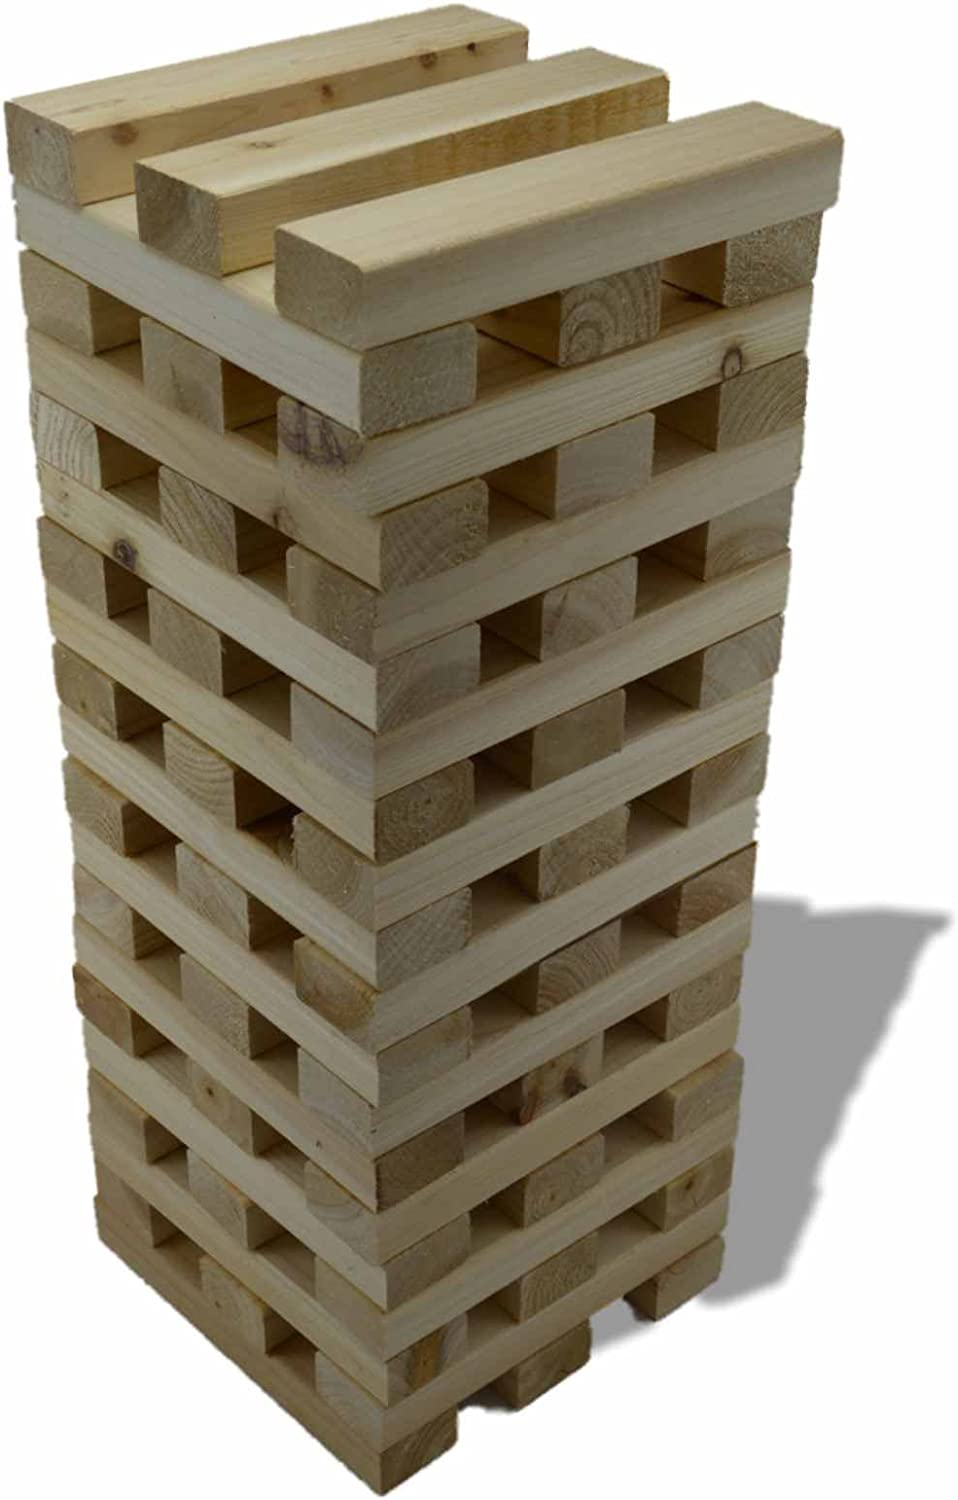 1.2M Giant Wooden Tumbling Tower 60 Solid Pieces Outdoor Garden Family Fun by Other: Amazon.es: Juguetes y juegos